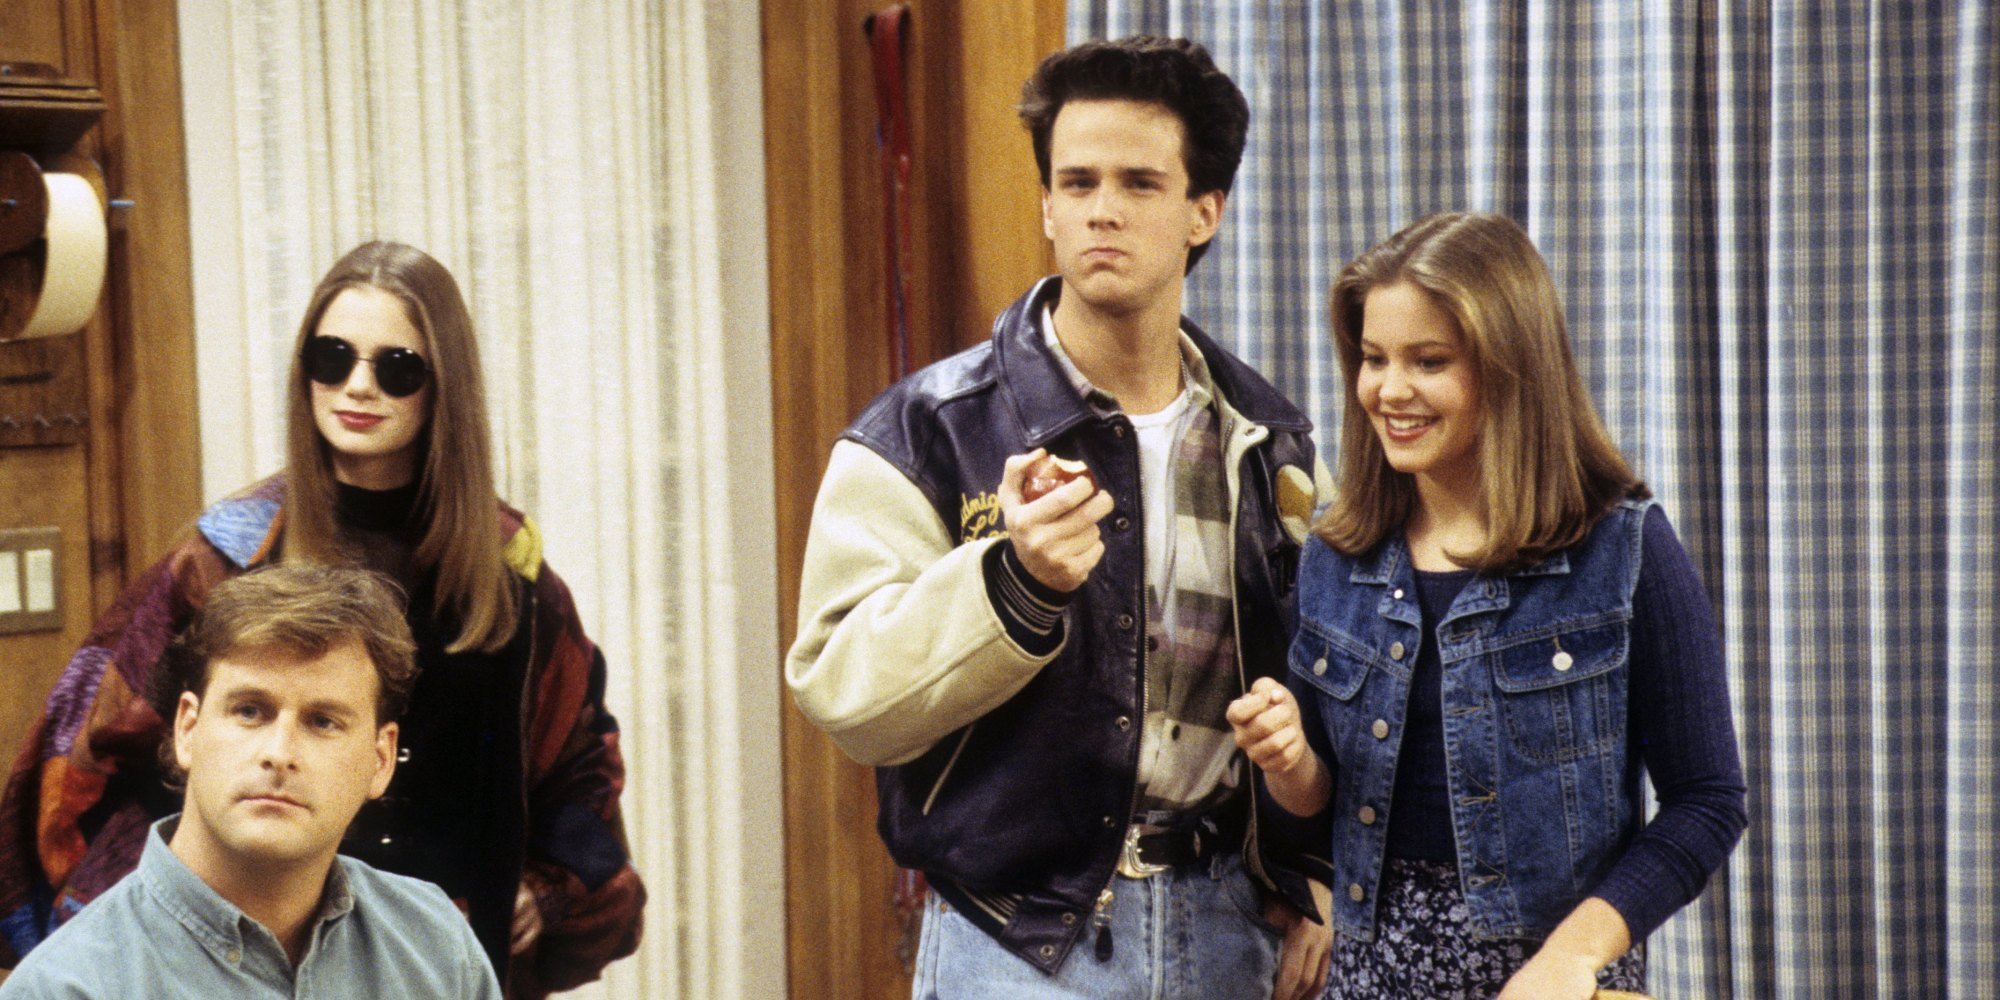 Full House Stars Candace Cameron And Scott Weinger To Reunite